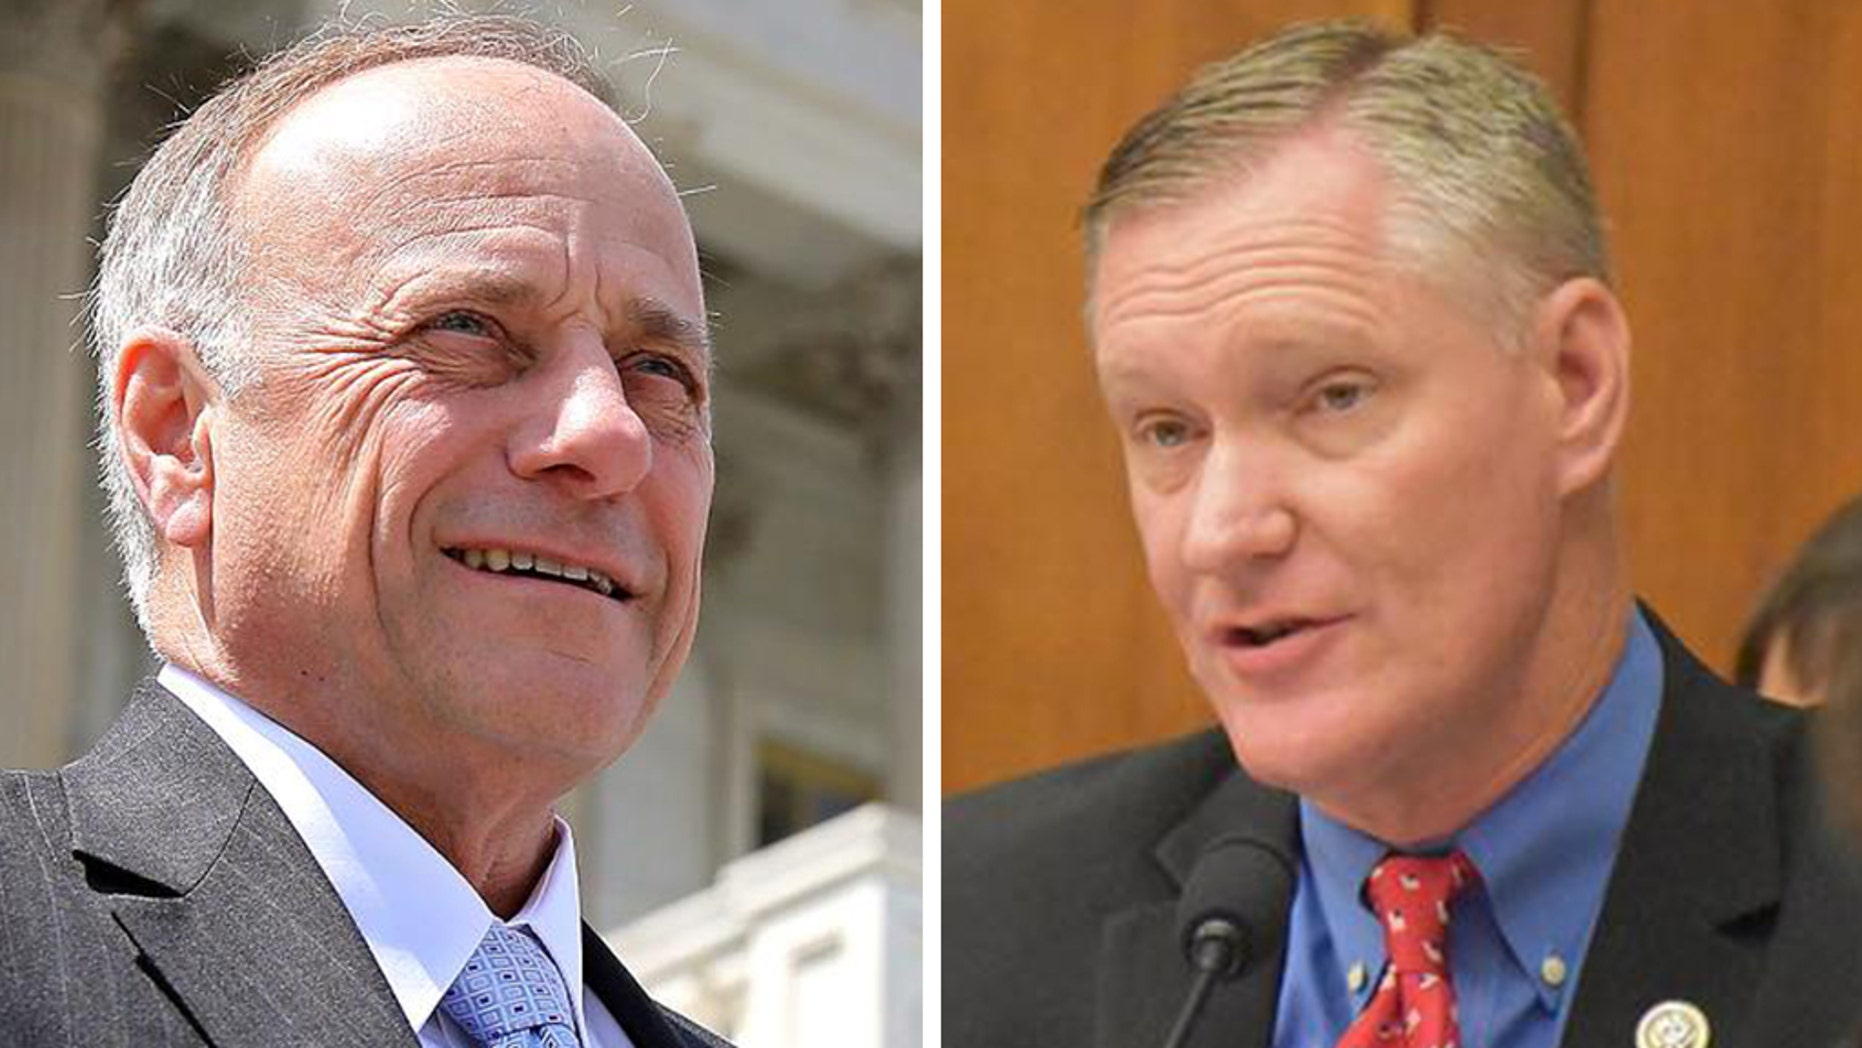 Rep. Steve King, Iowa's 4th congressional district, Republican and Rep. Steve Stivers, Ohio's 15th congressional district, Republican.